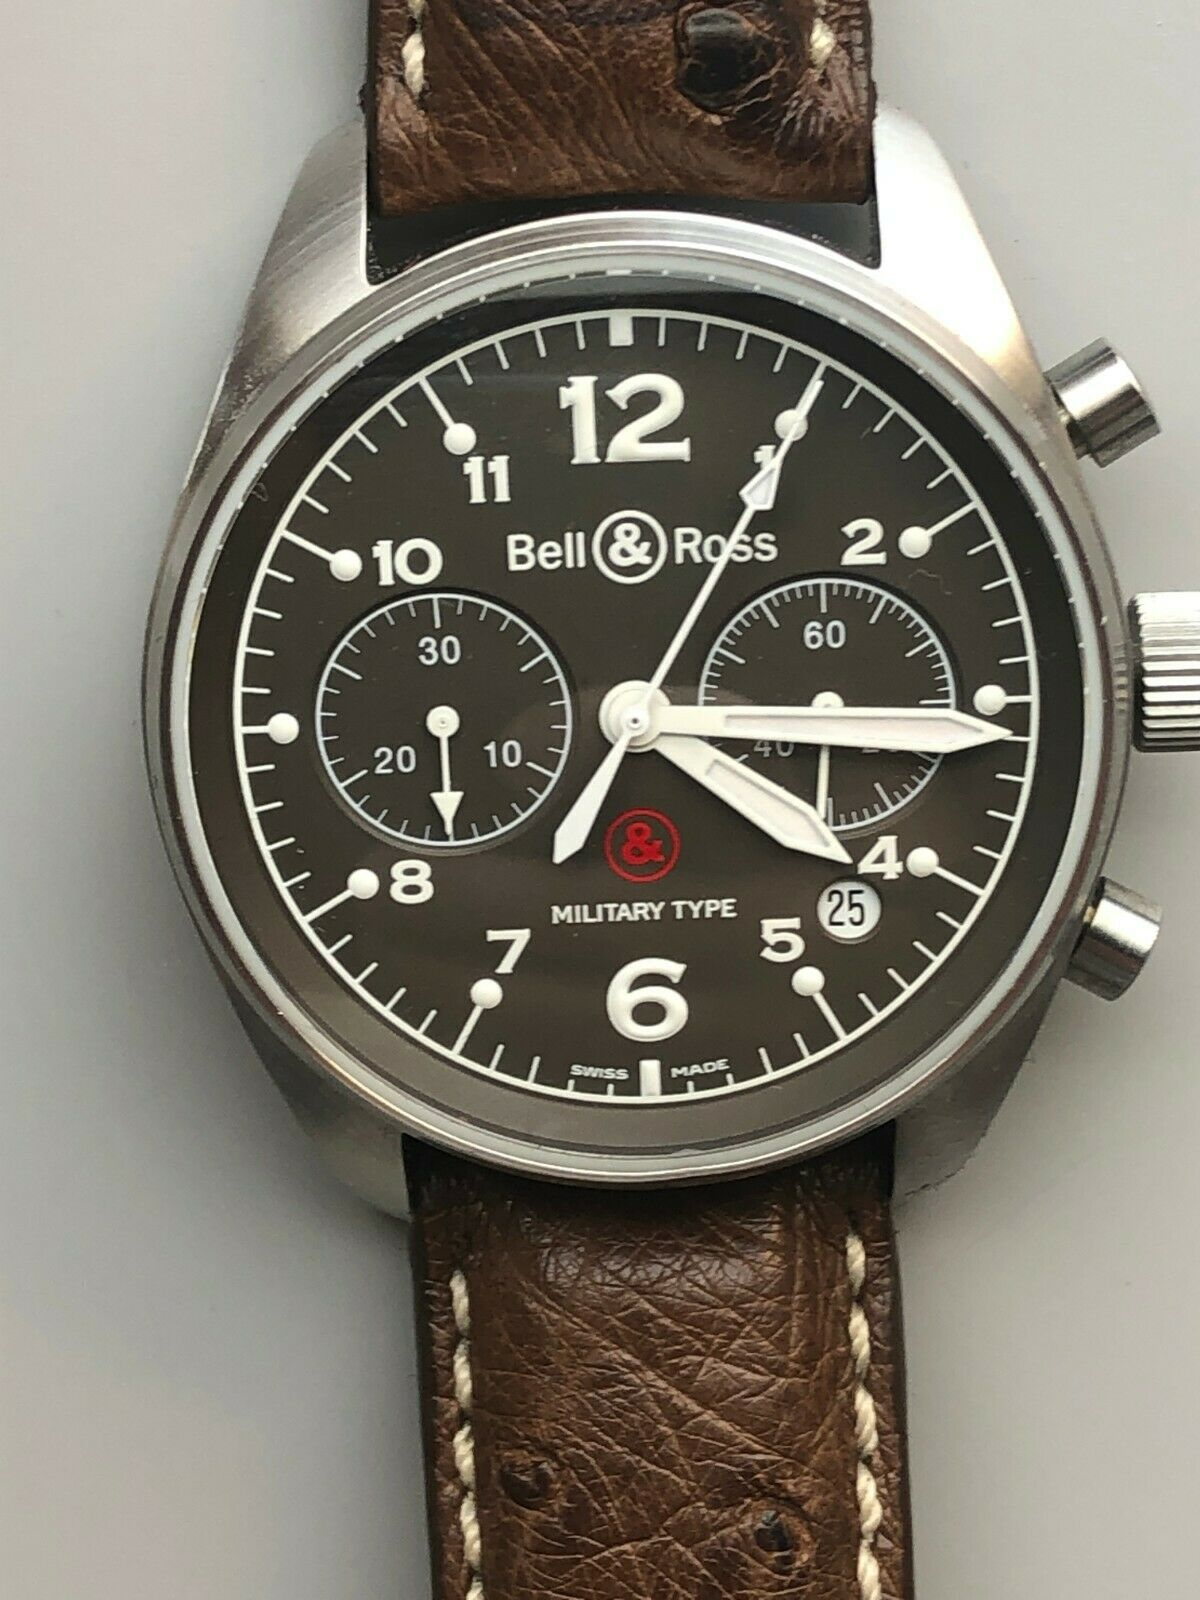 Bell & Ross Br-126.M S262/999 LIMITED EDITION SERVICED 39mm – RARE NO RESERVE - watch picture 1